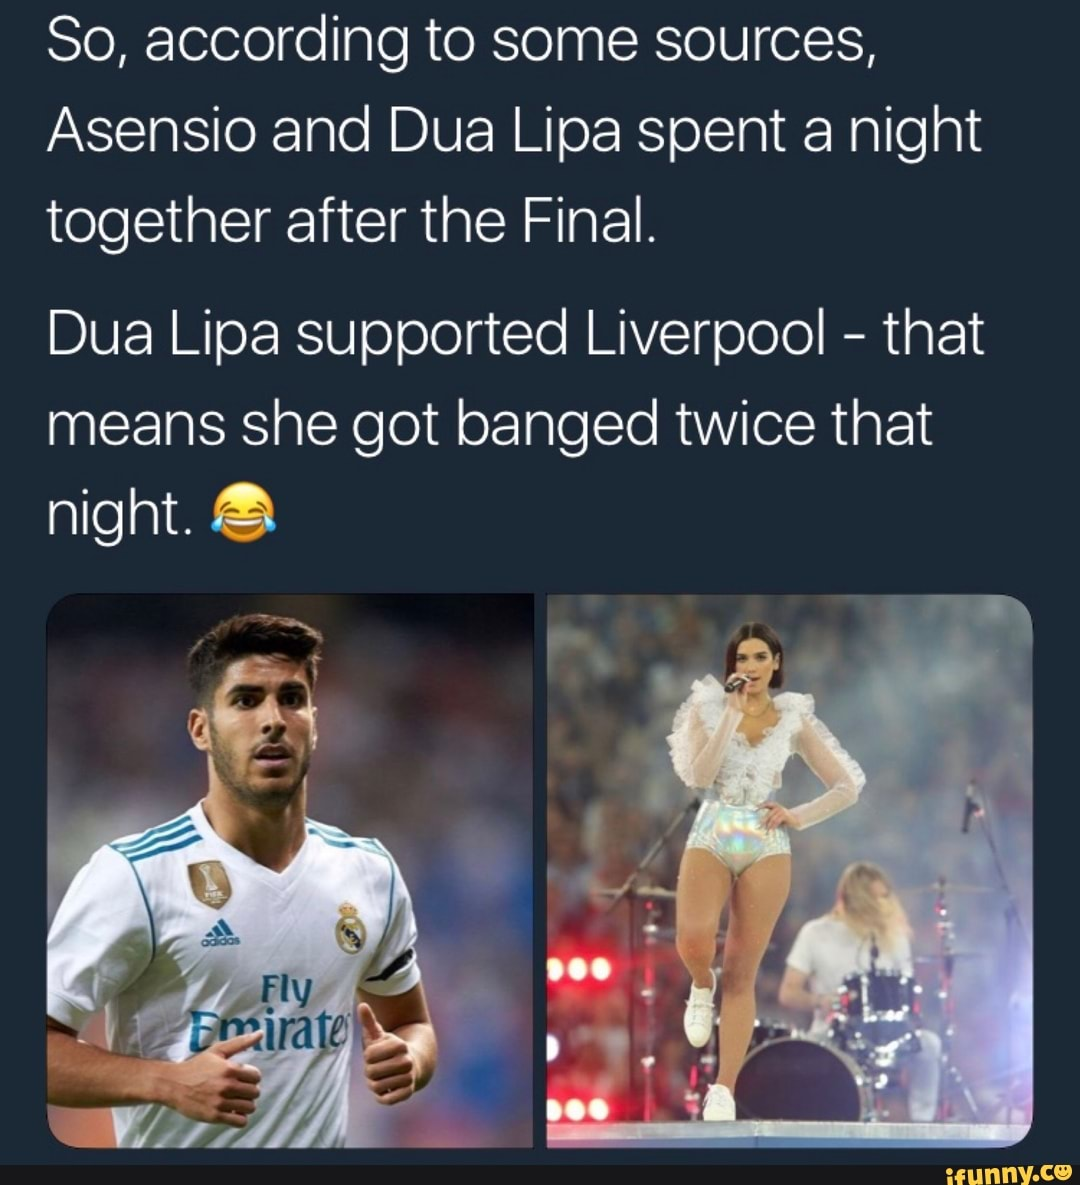 80, according to some sources, Asensio and Dua Lipa spent a night together  after the Final. Dua Lipa supported Liverpool - that means she got banged  twice that night. © - iFunny :)